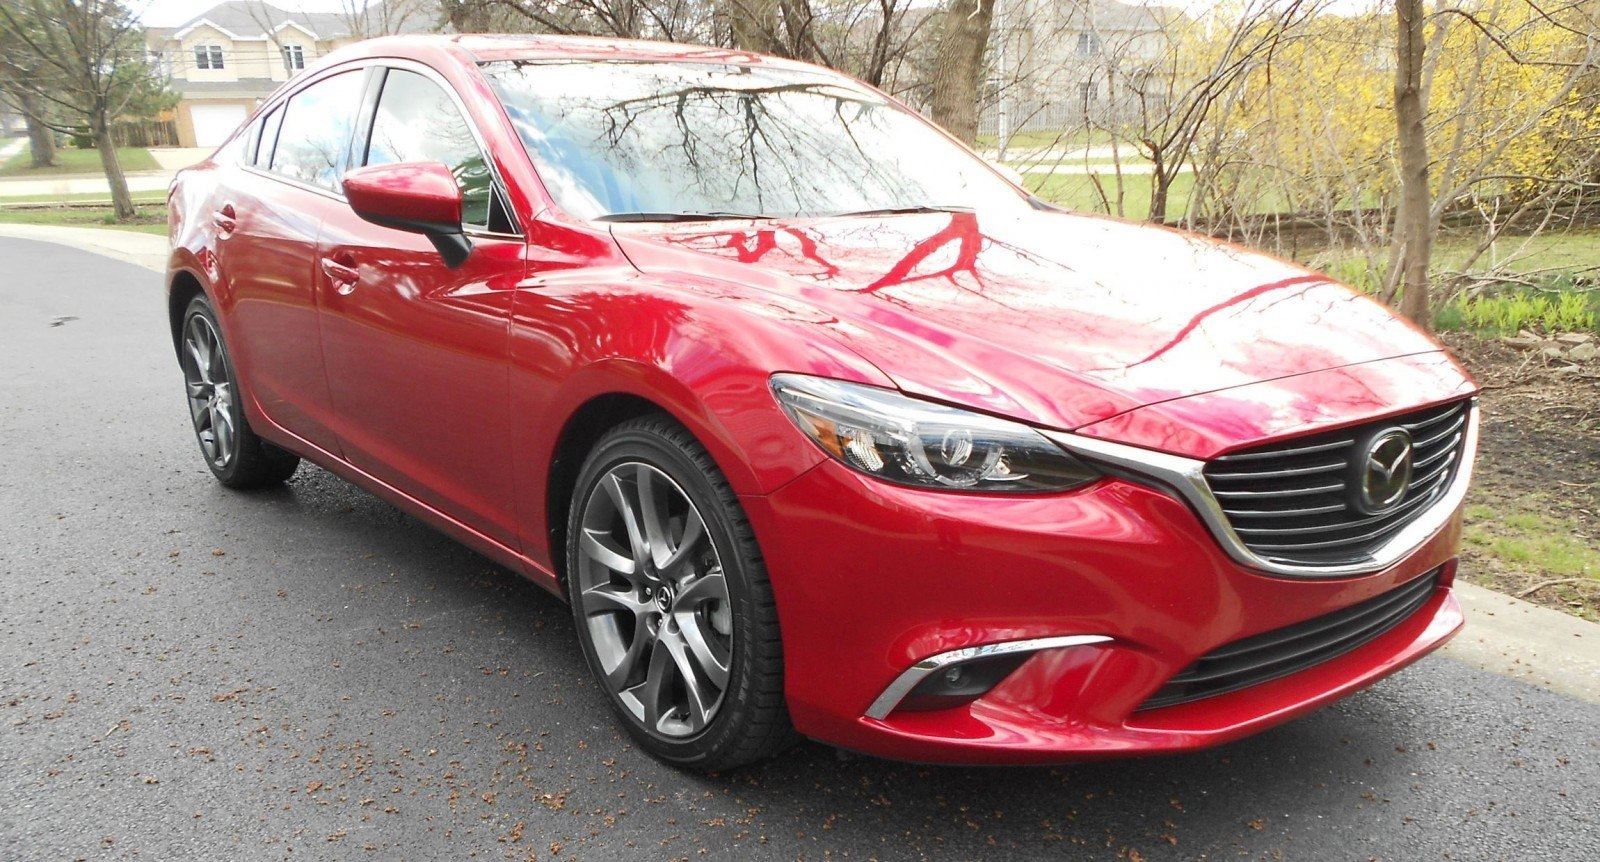 road test review 2016 mazda6 by ken hawkeye glassman car revs. Black Bedroom Furniture Sets. Home Design Ideas